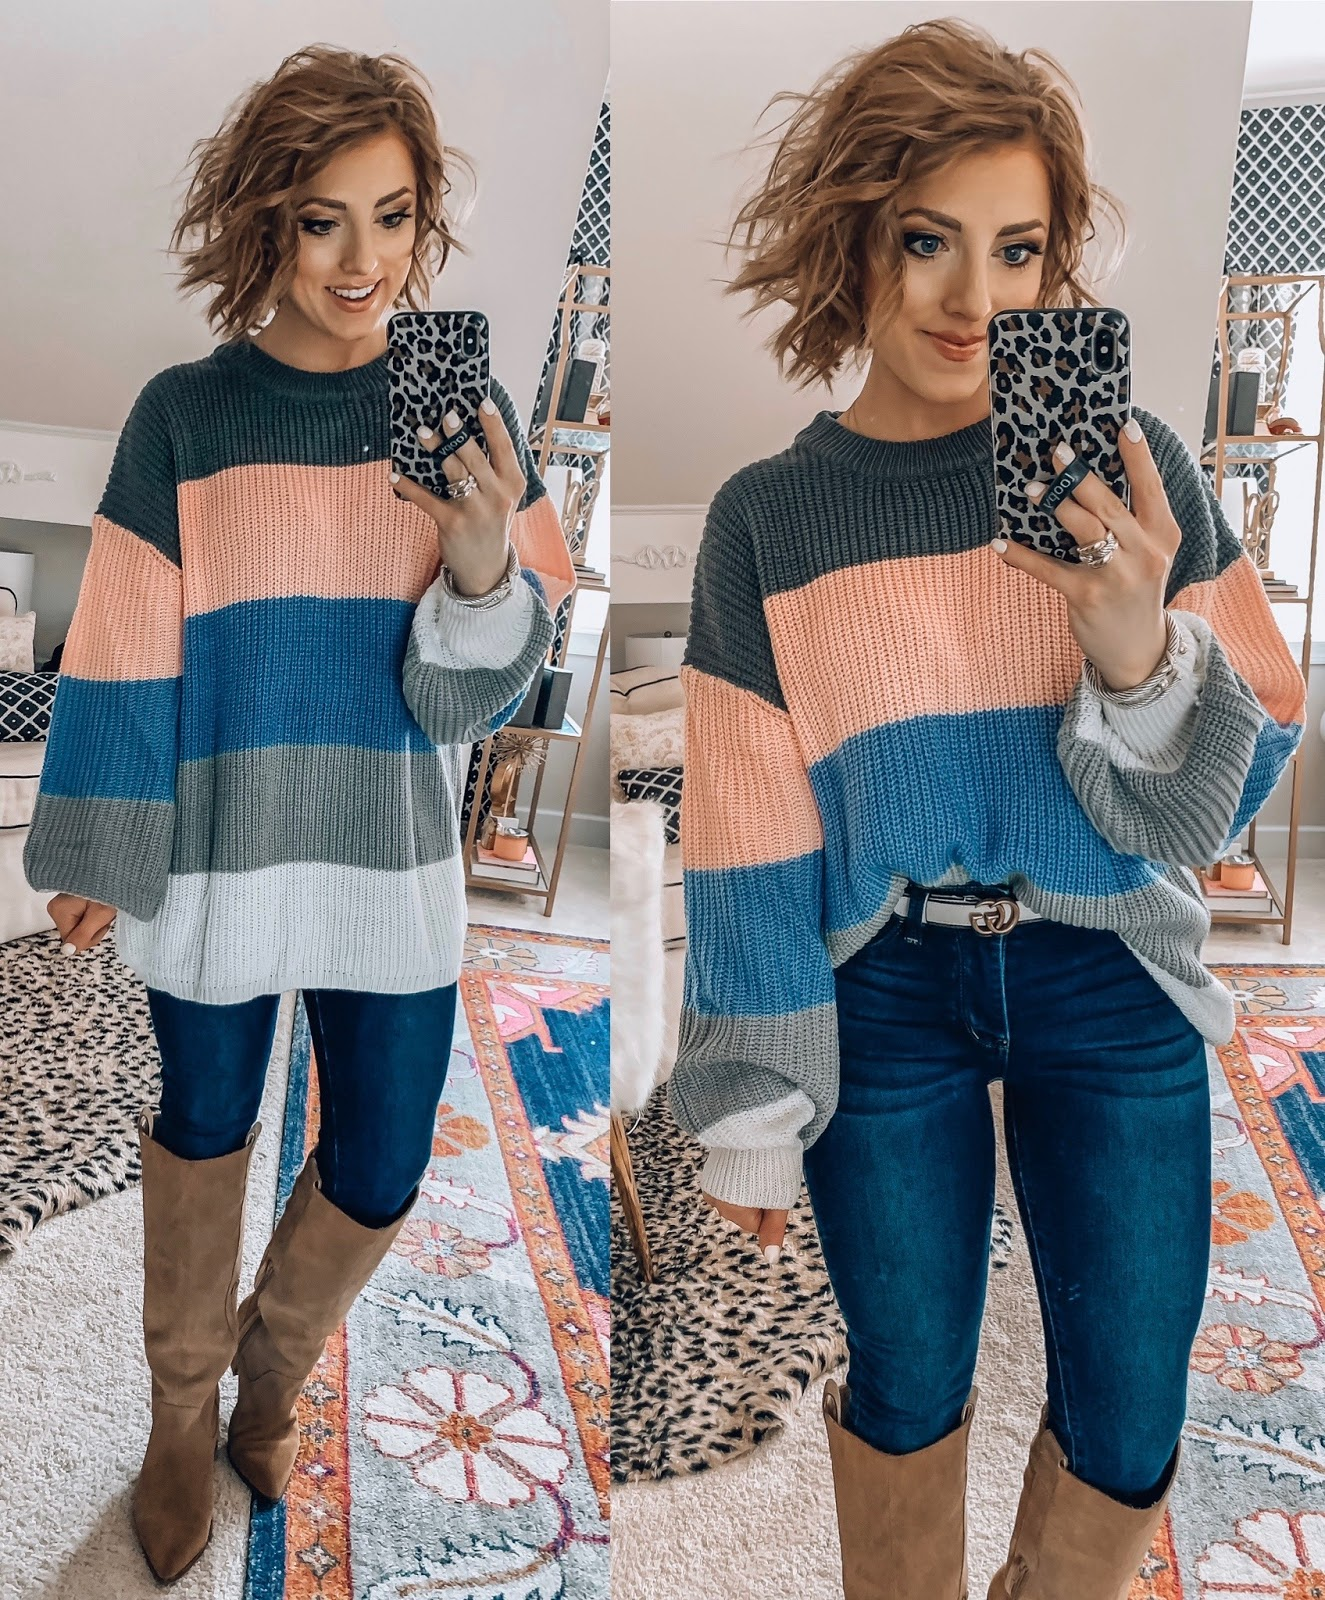 Recent Amazon Finds - Under $30 Pink and Grey Color block Sweater - Something Delightful Blog #AmazonFashion #RecentFinds #Hearts #ValentinesDay #AffordableFashion